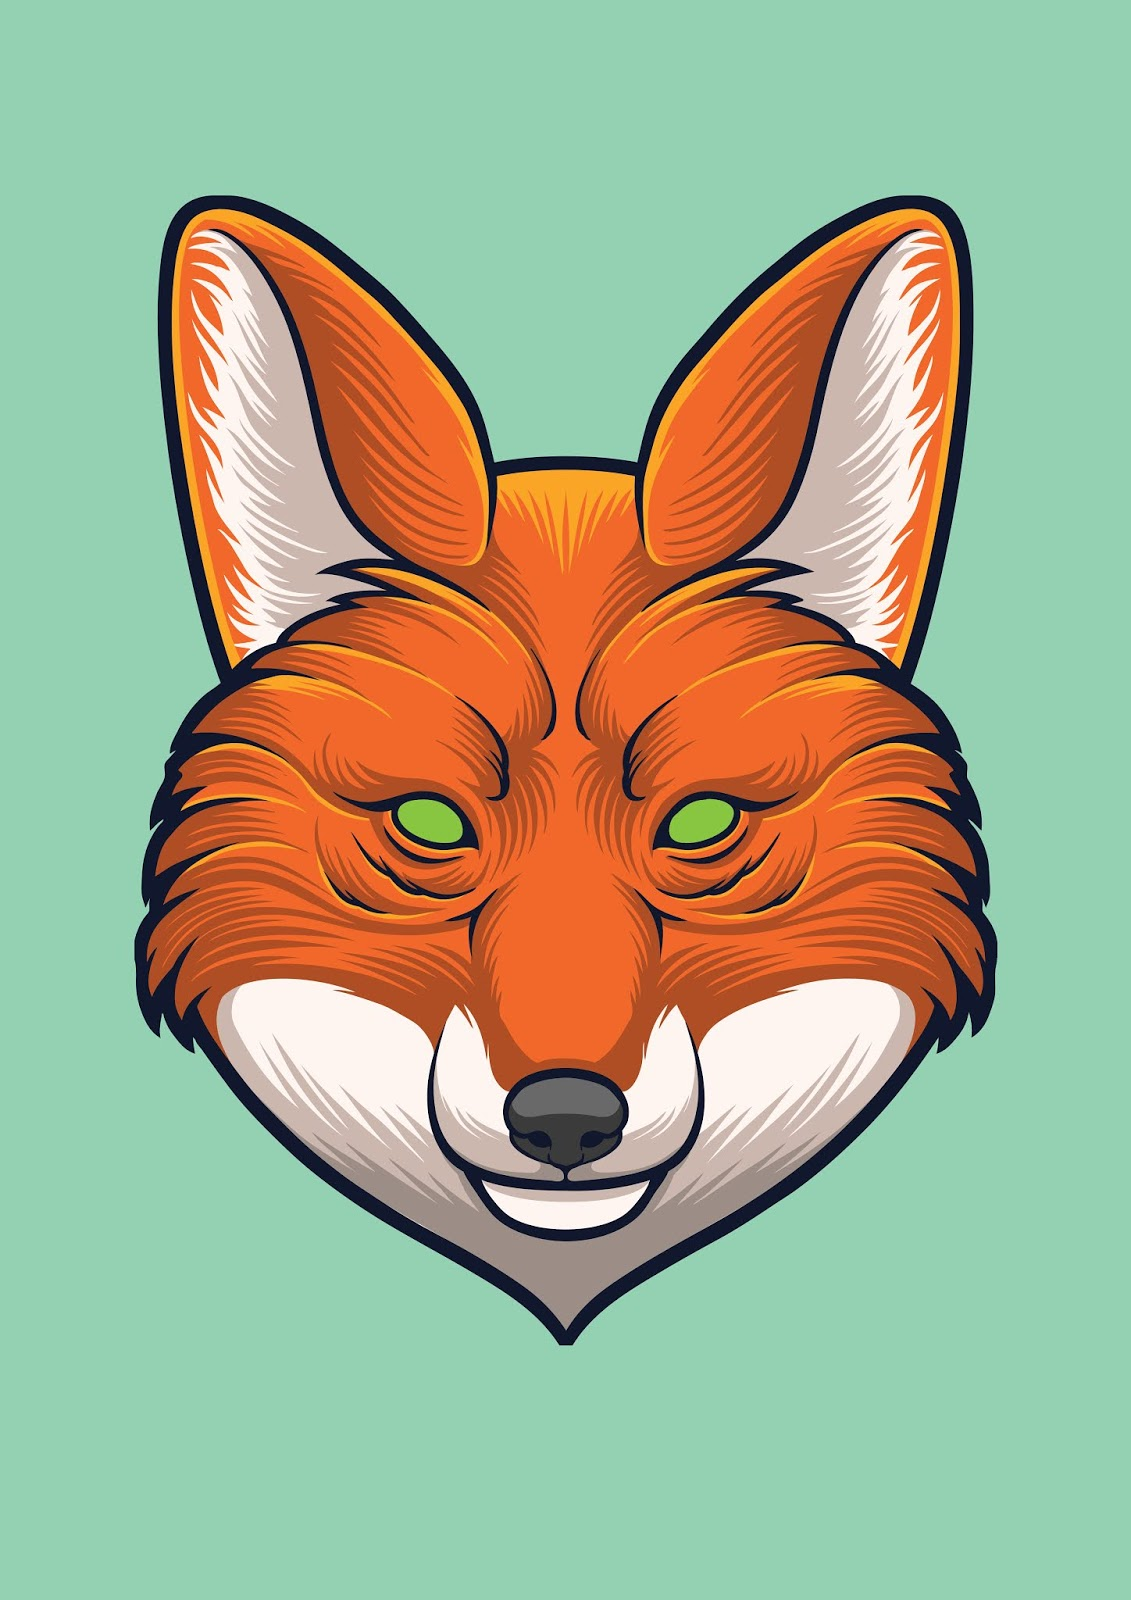 Fox Head Vector Design Illustration Free Download Vector CDR, AI, EPS and PNG Formats